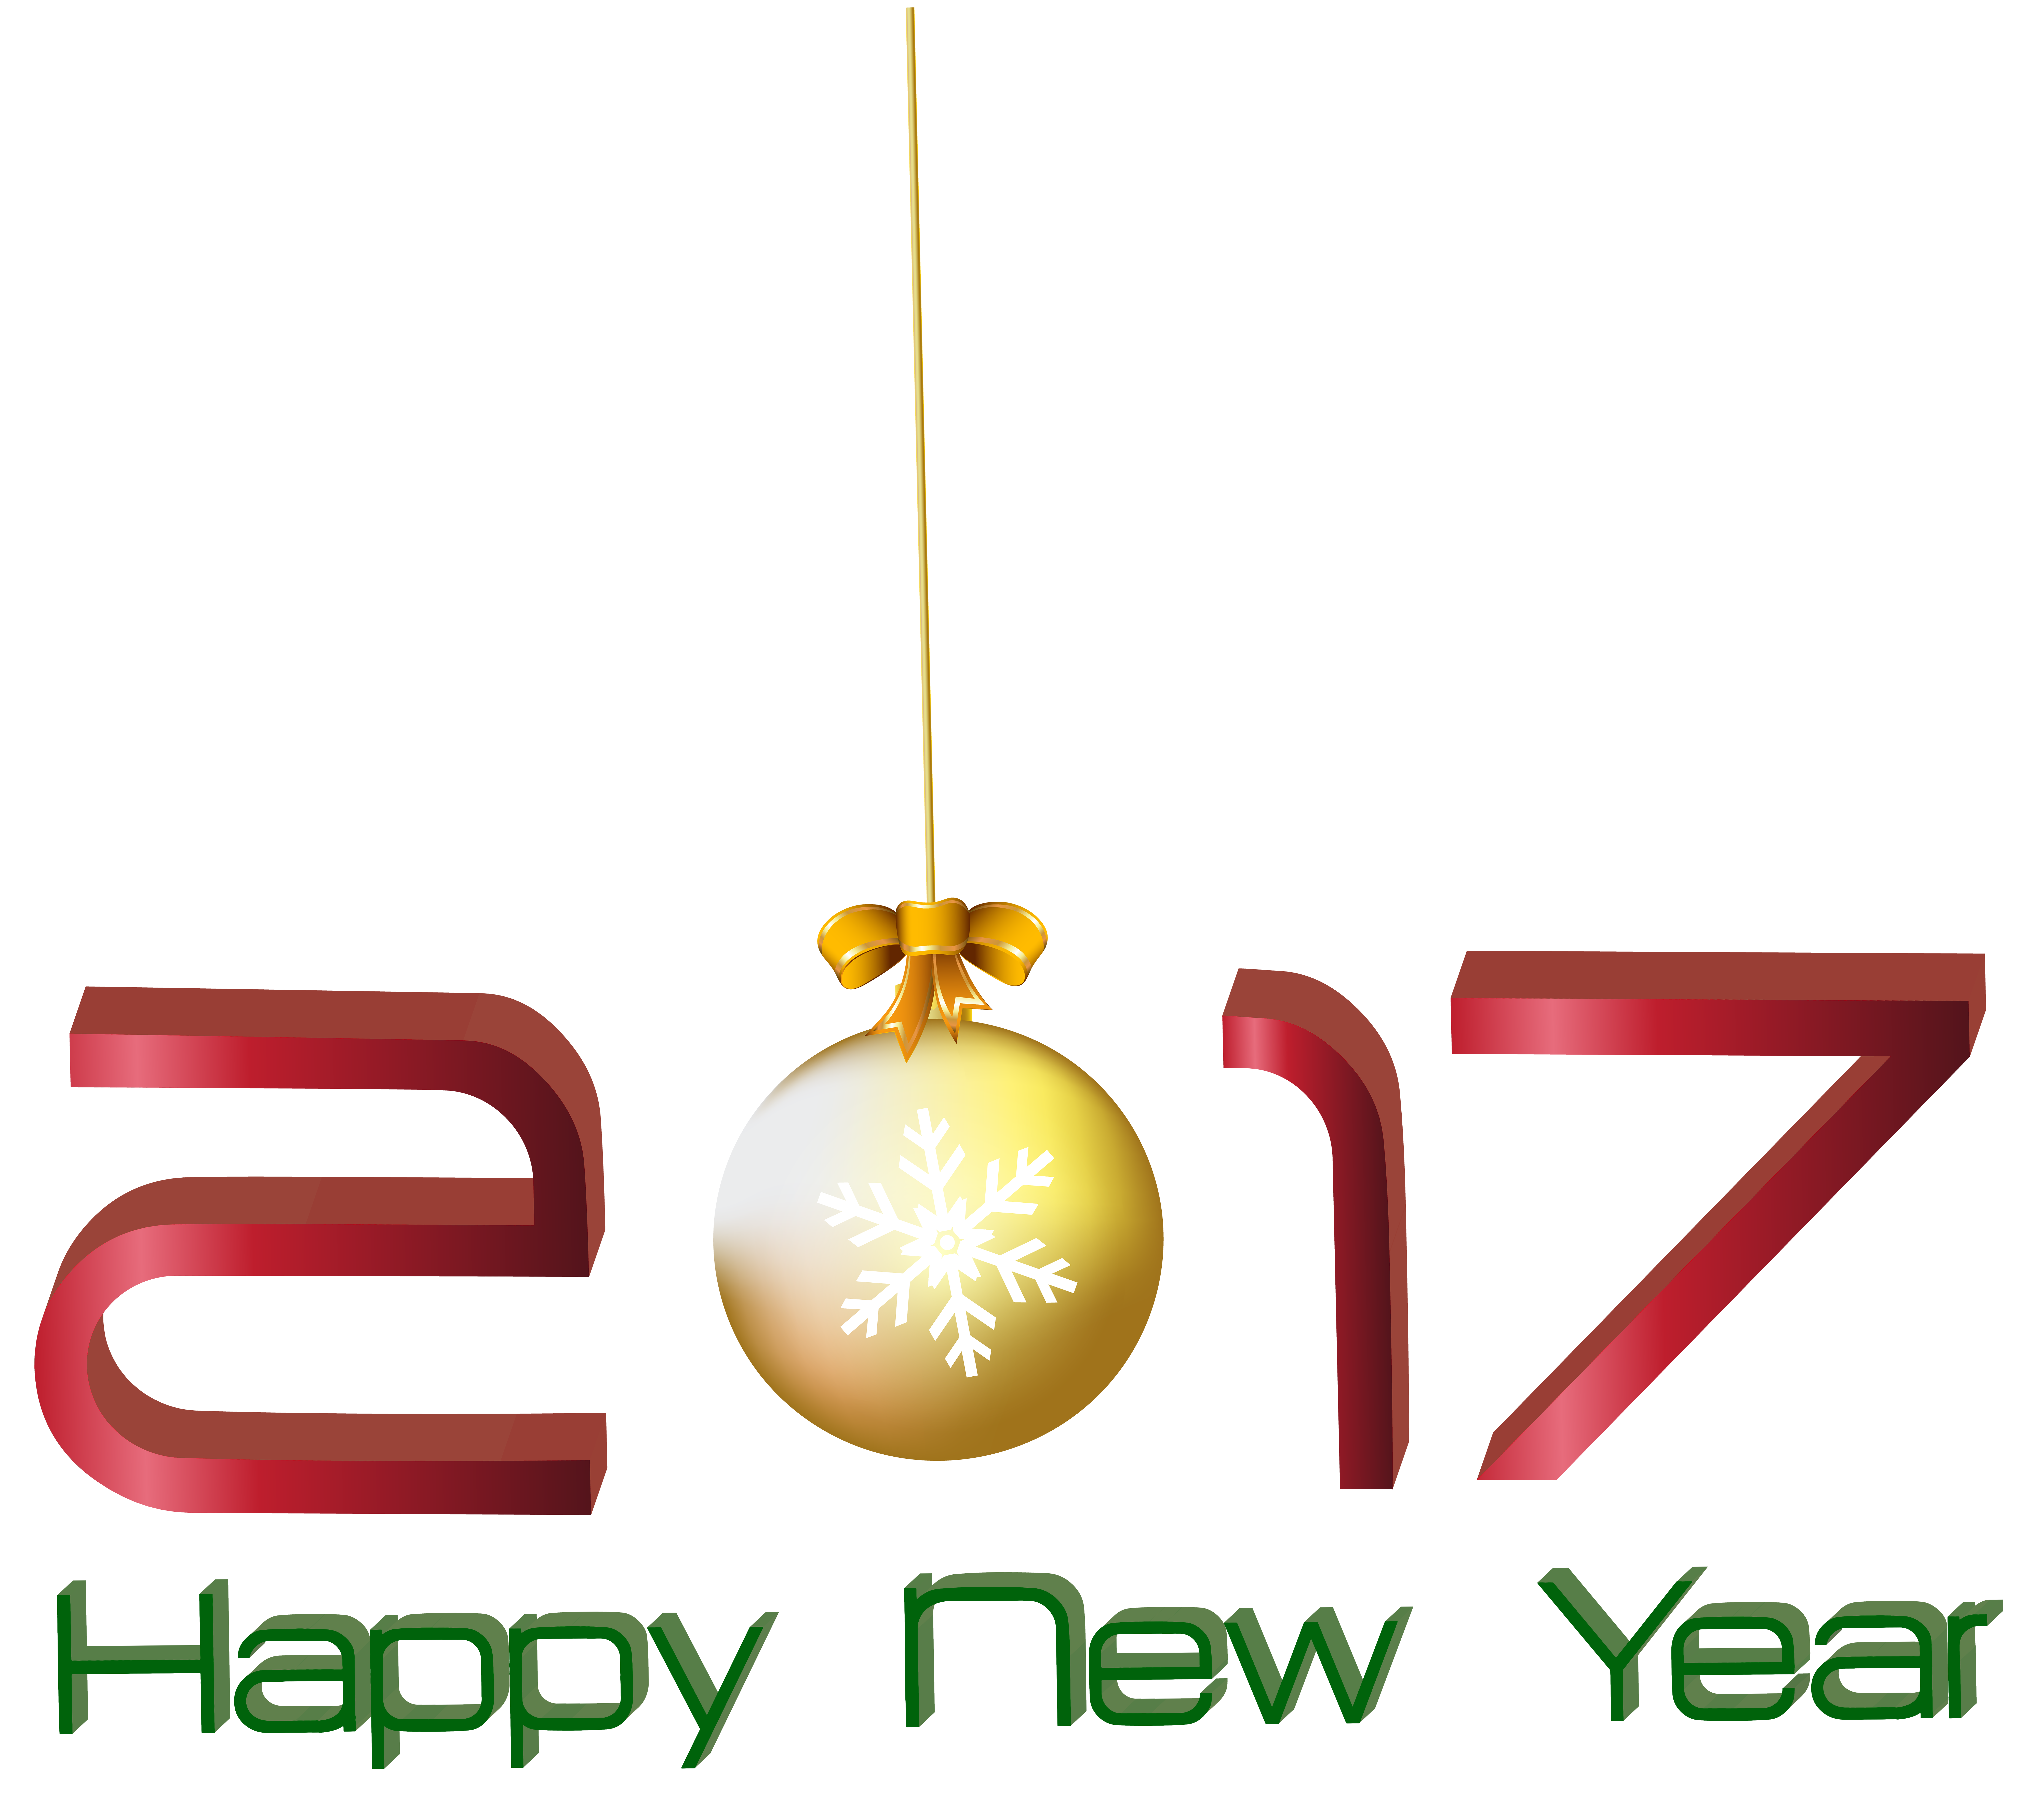 2017 Happy New Year Transparent PNG Clip Art Image.